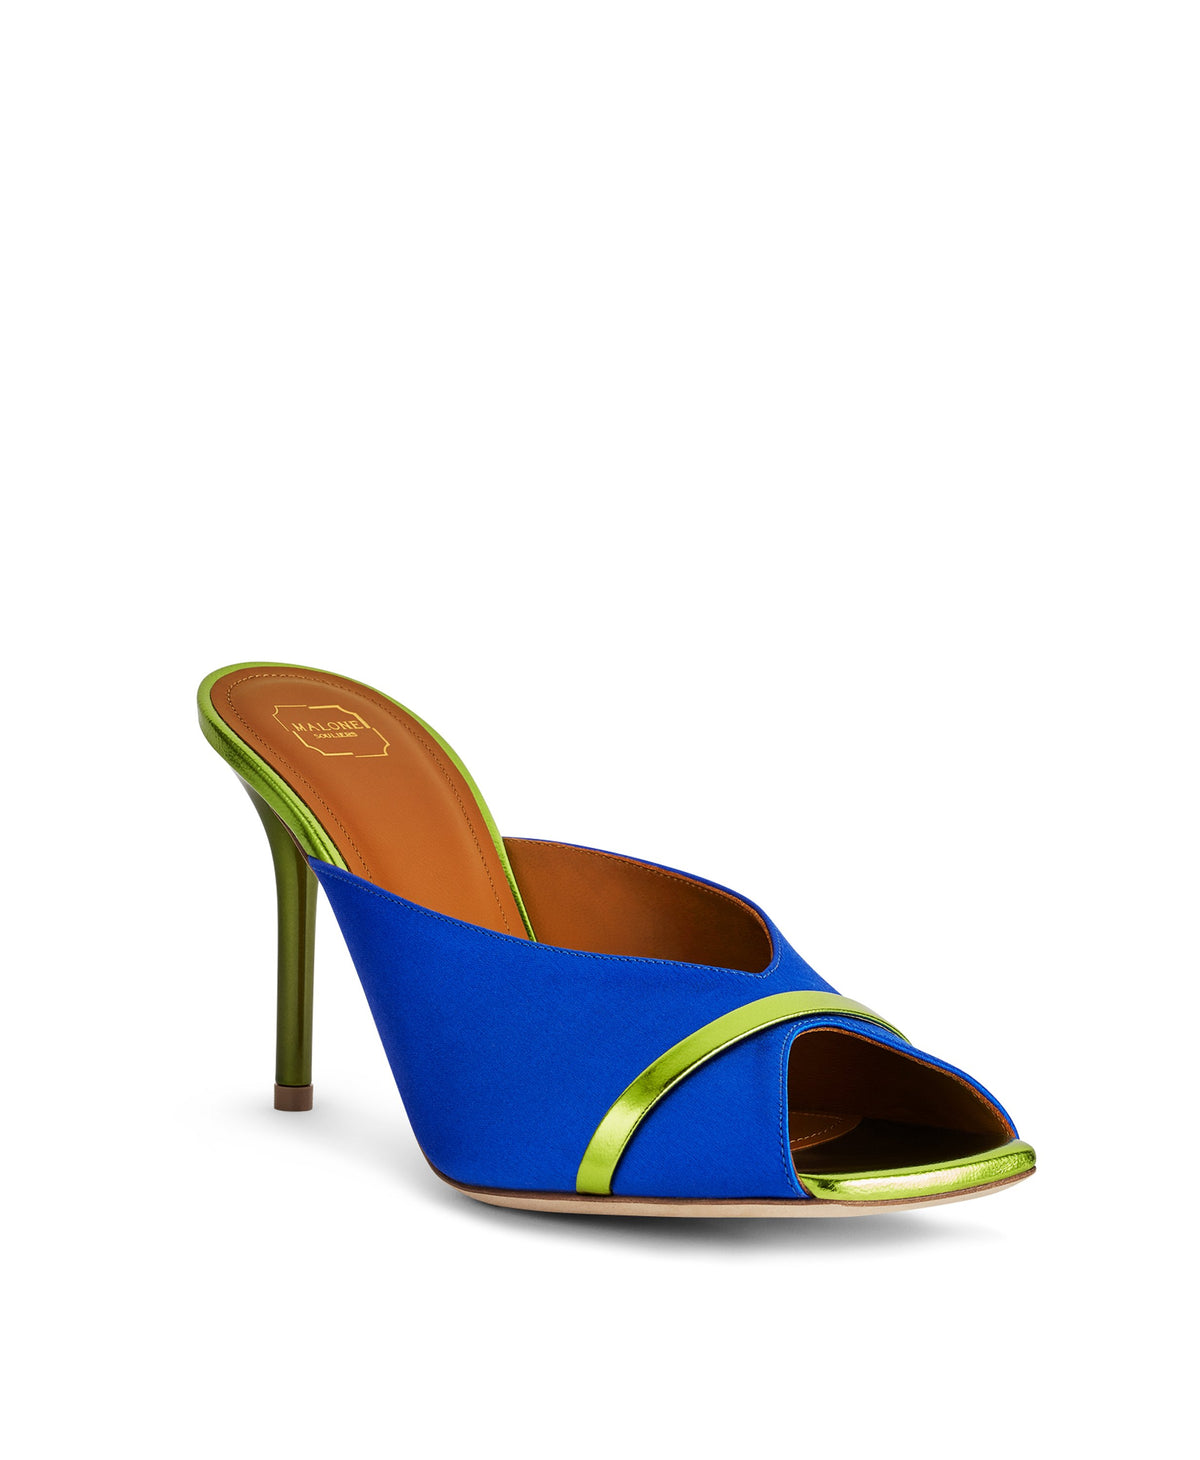 Women's Electric Blue Satin Designer Mules With Stiletto Heel Malone Souliers